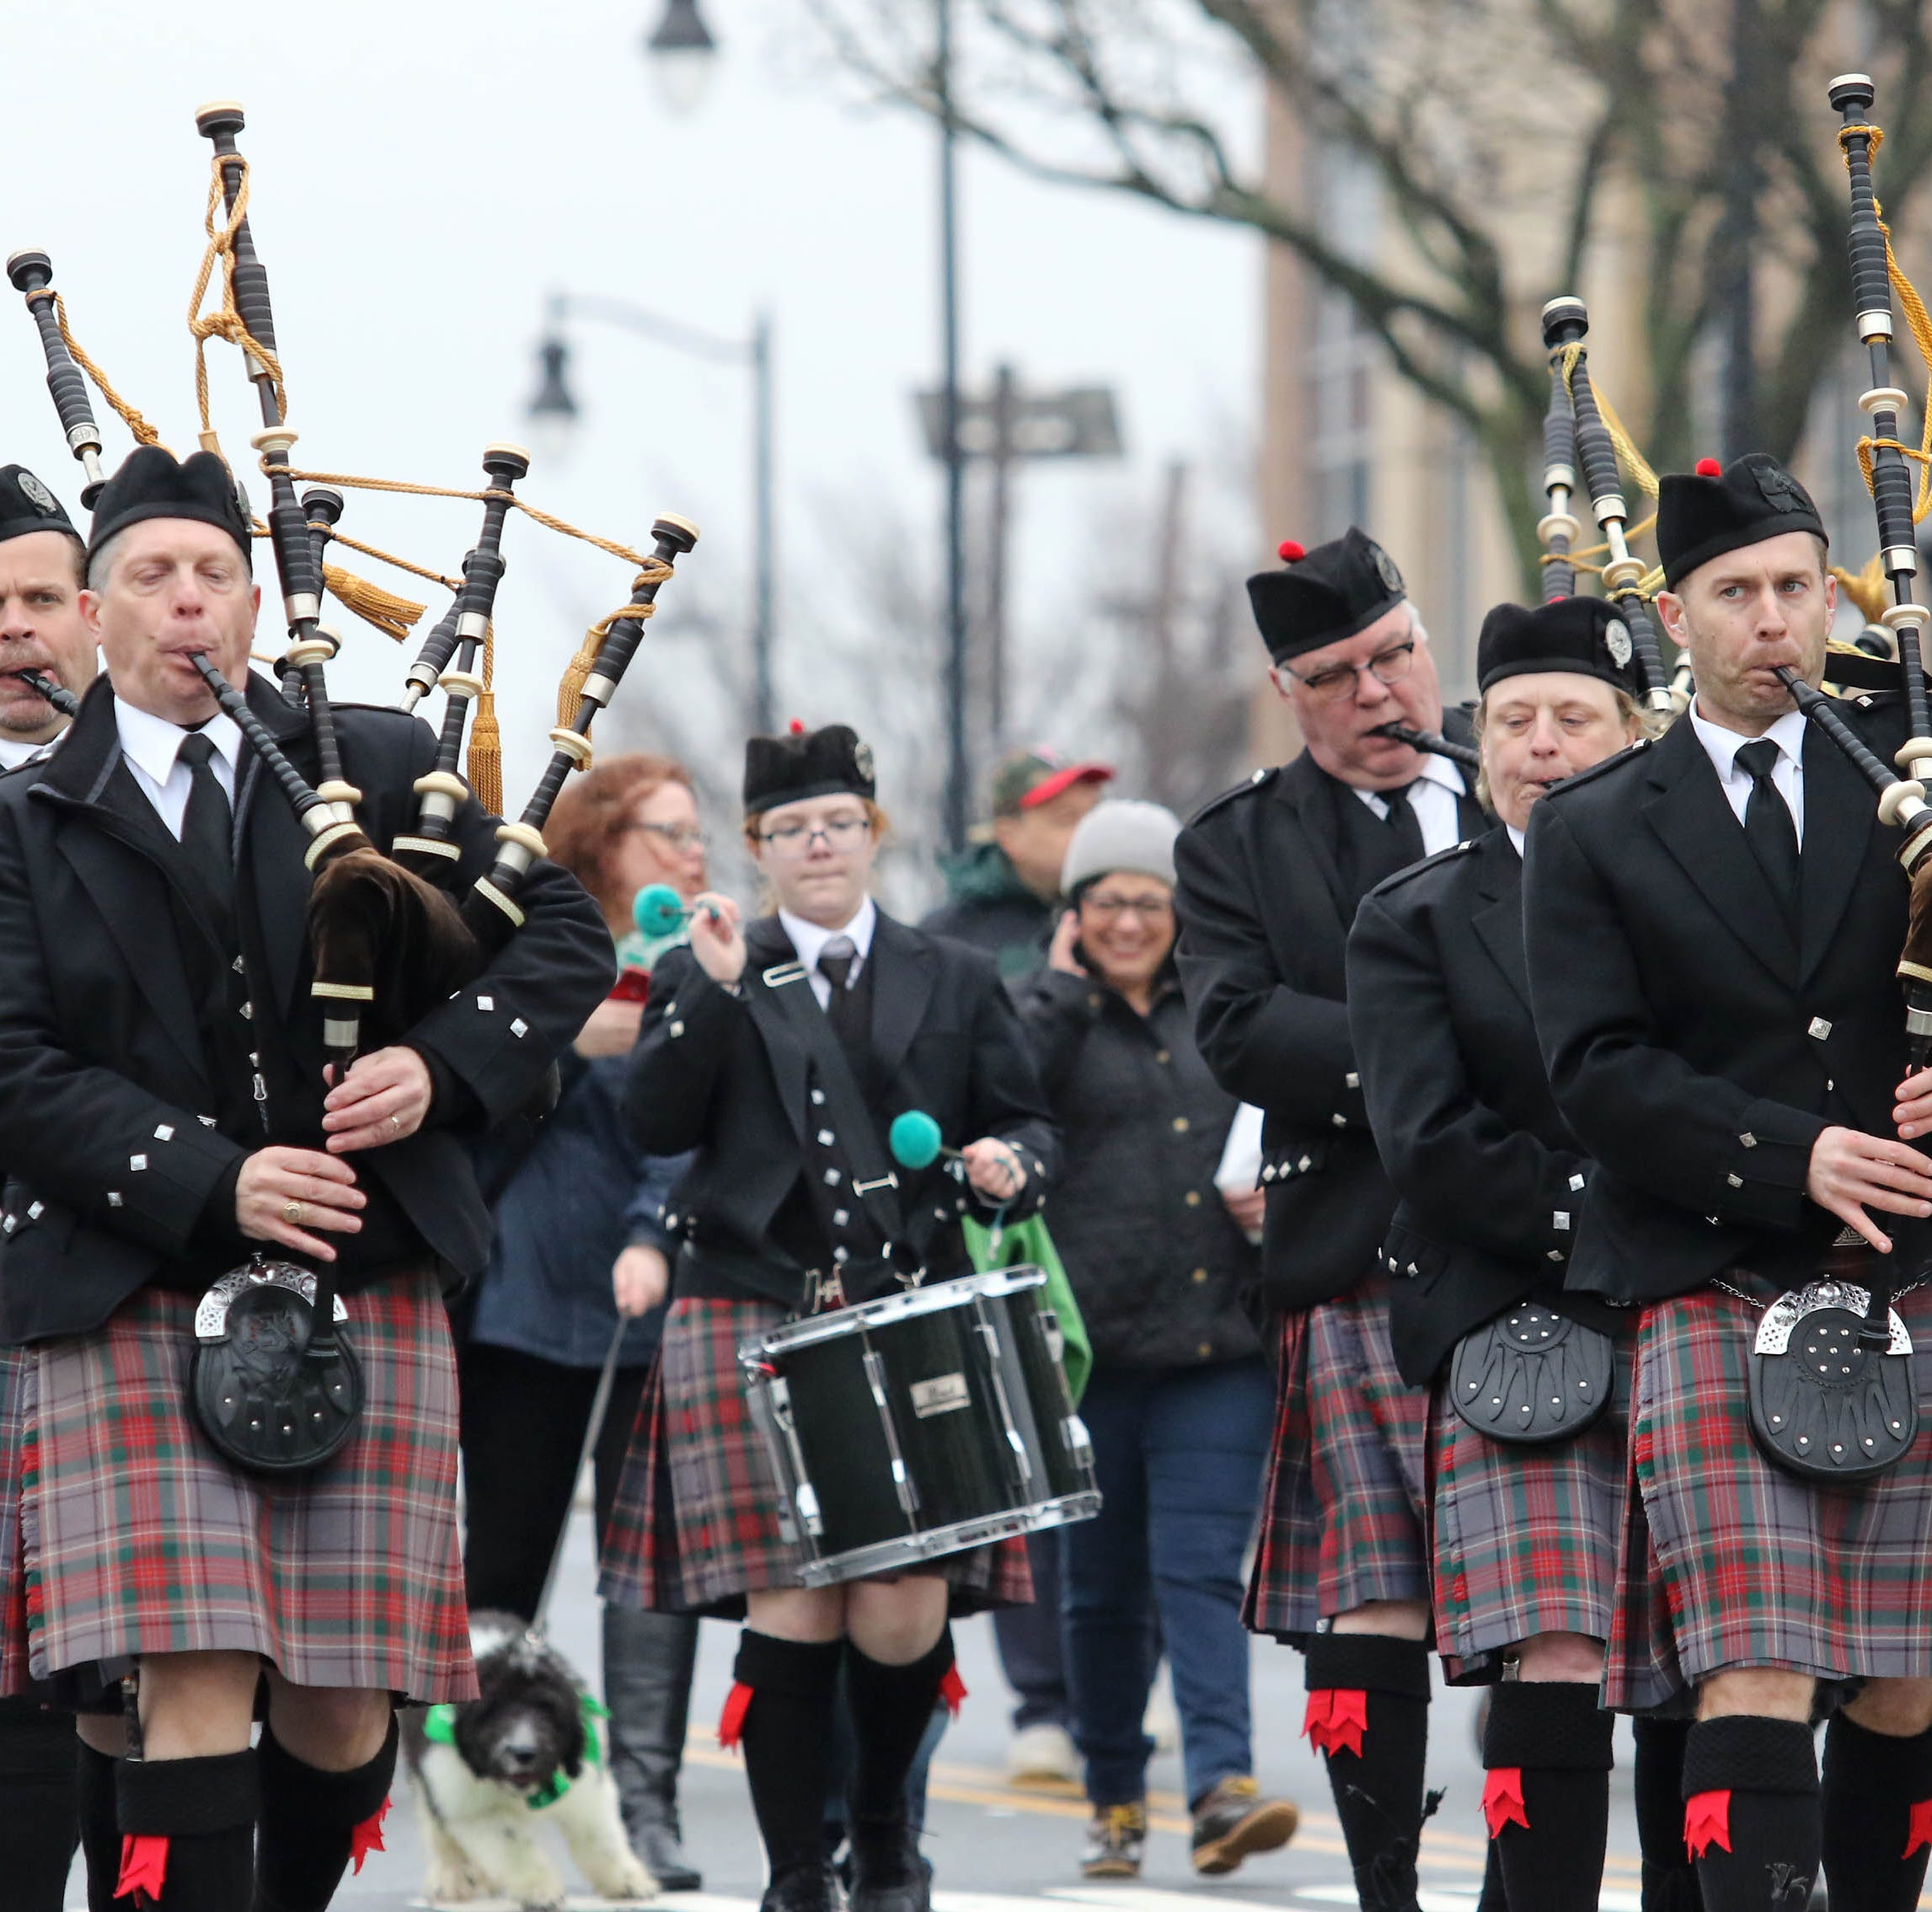 Somerville St. Patrick's Day Parade 2019 a damp but delightful experience